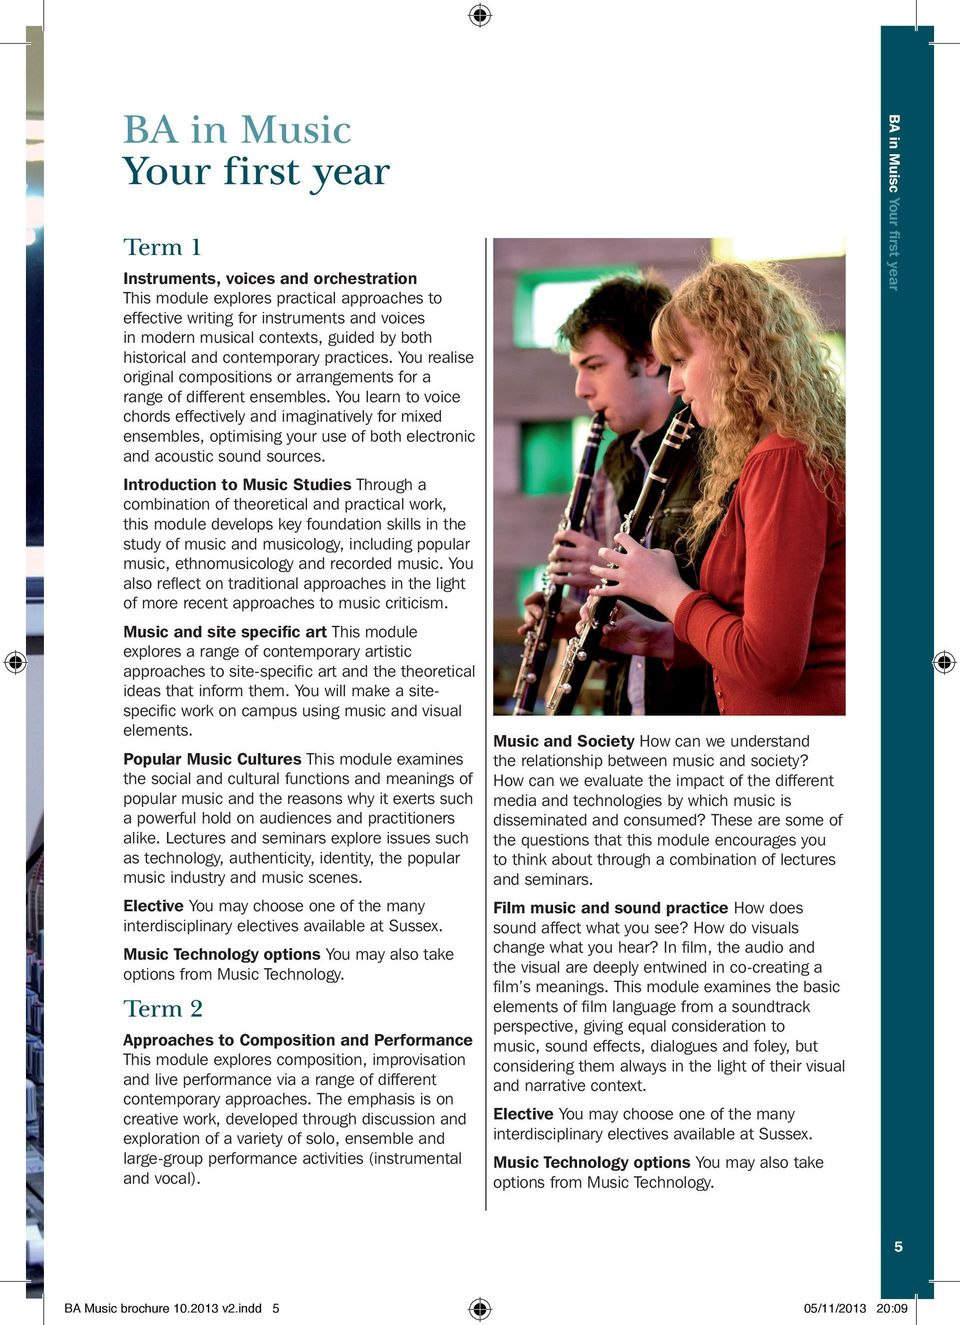 You learn to voice chords effectively and imaginatively for mixed ensembles, optimising your use of both electronic and acoustic sound sources.